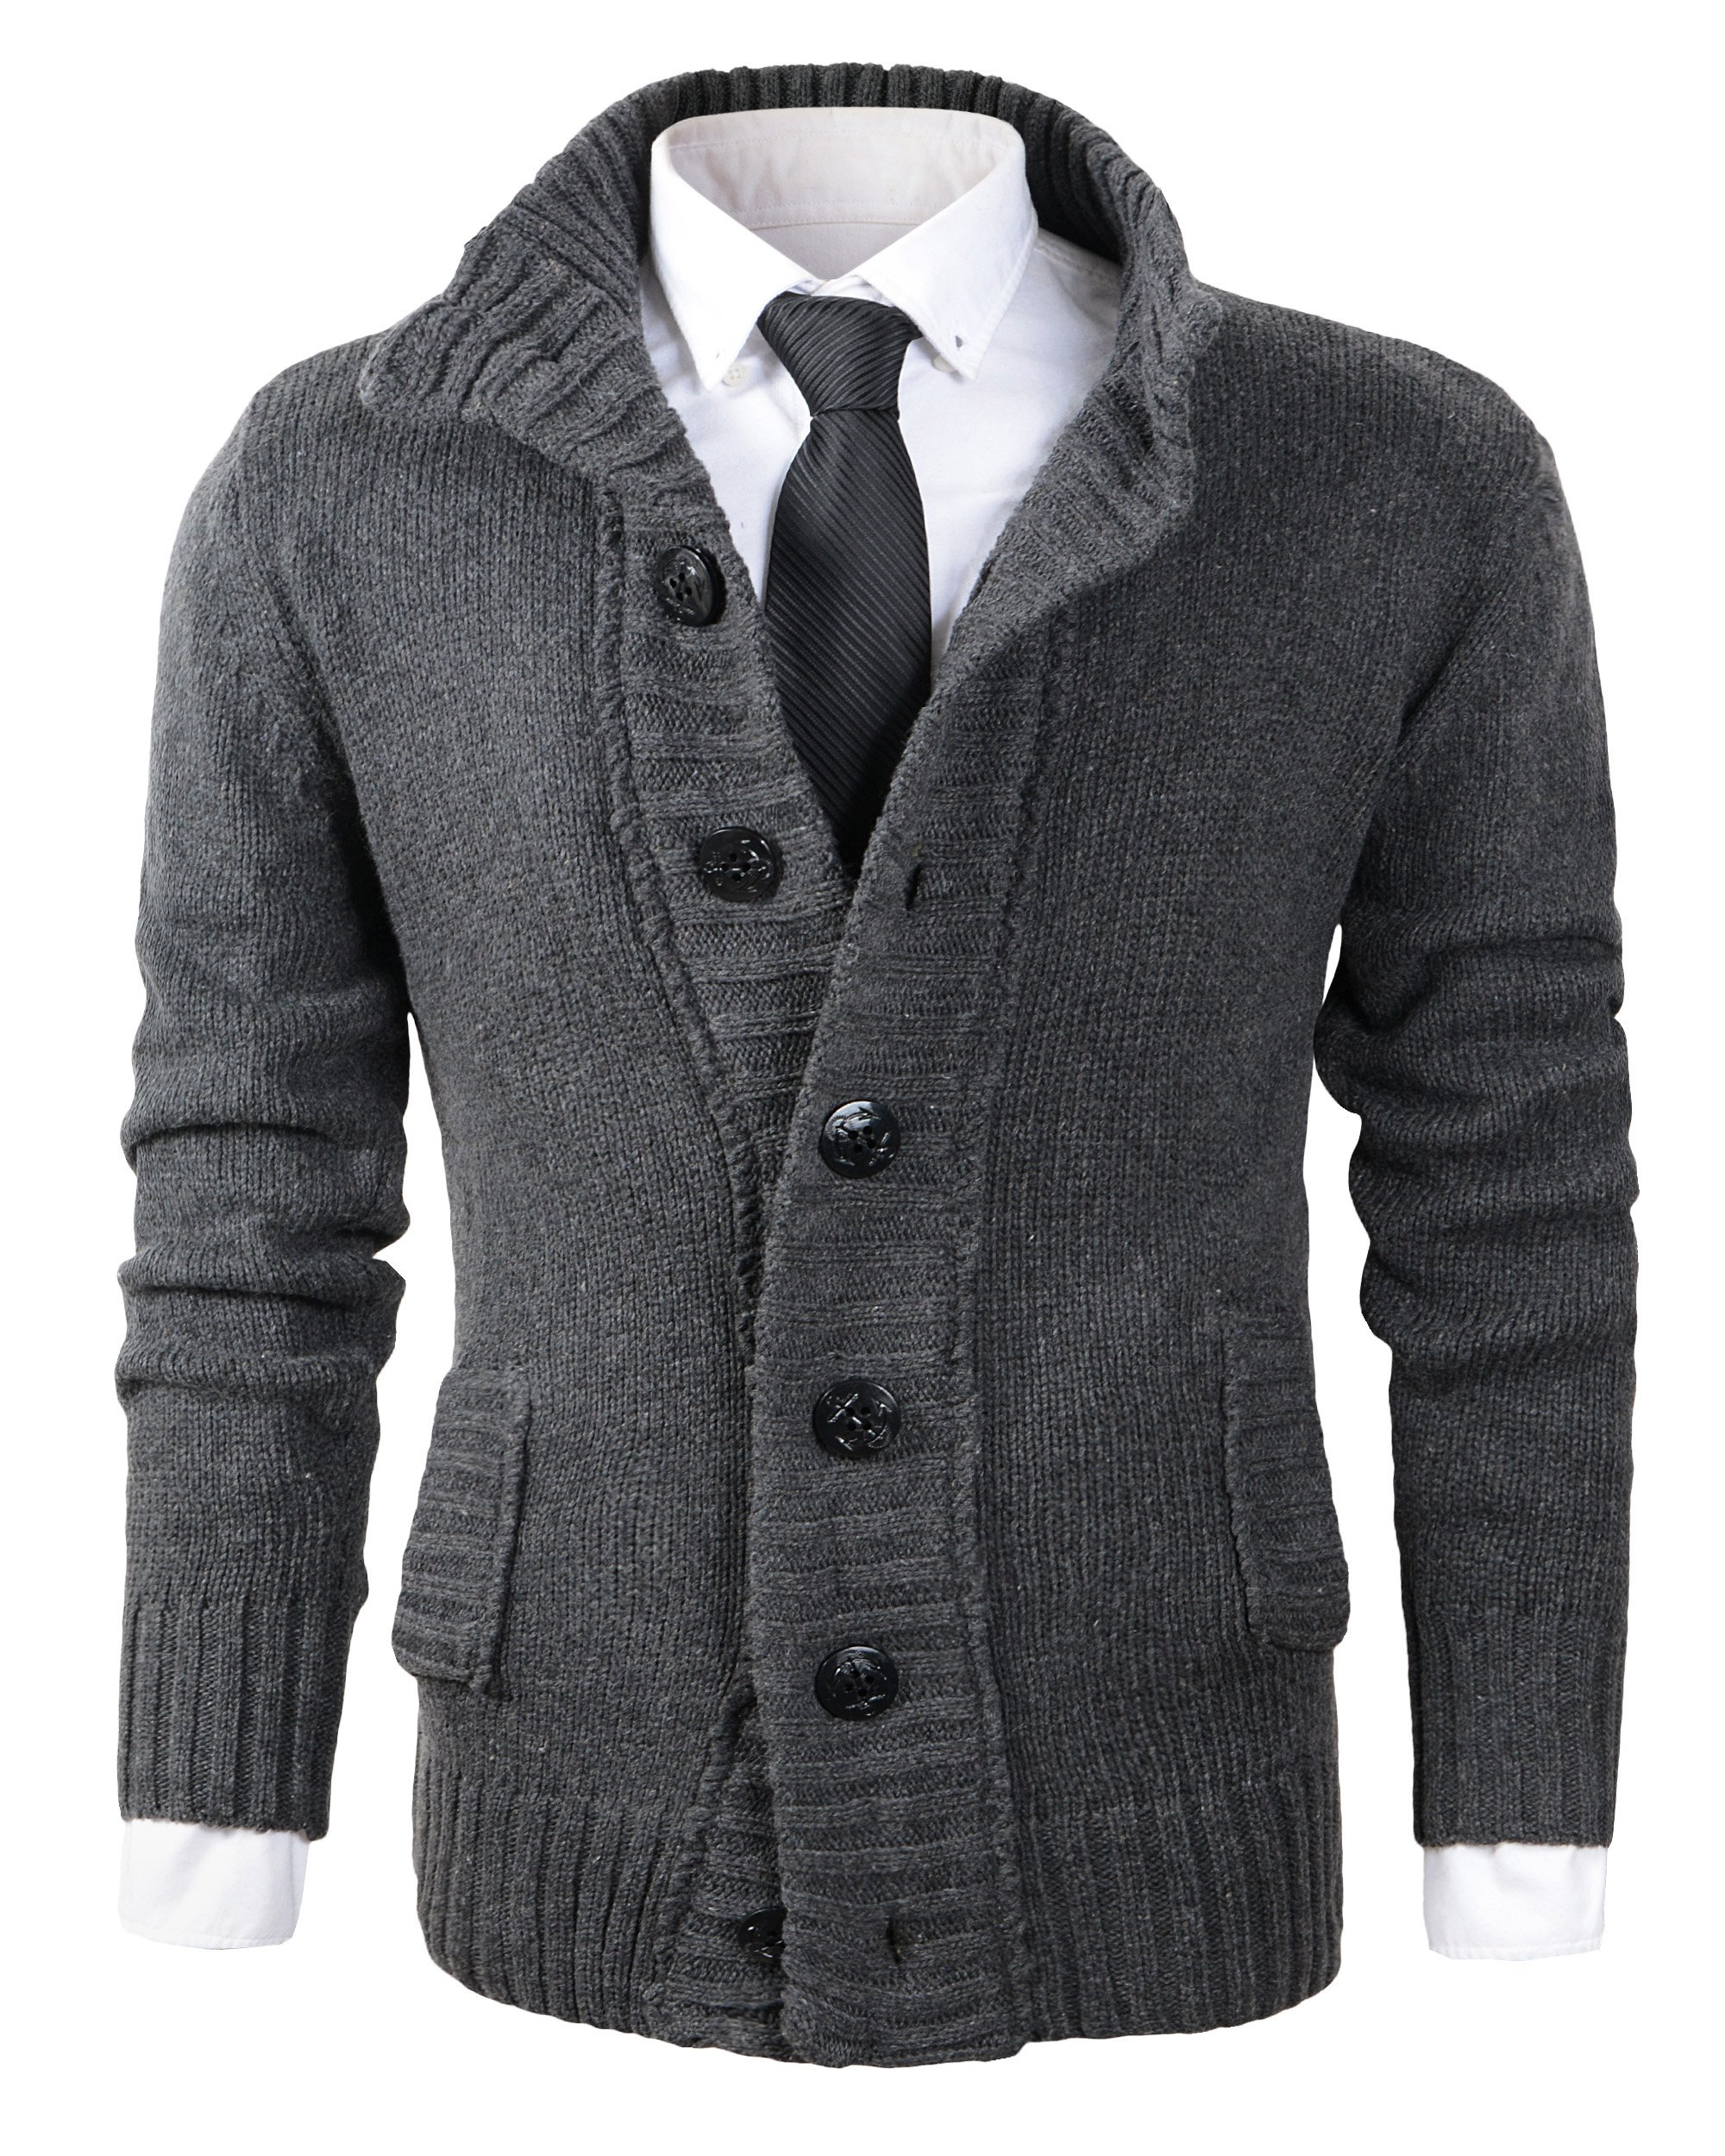 Benibos Men's Button Point Stand Collar Knitted Slim Fit Cardigan Sweater (L, CYMY Grey)